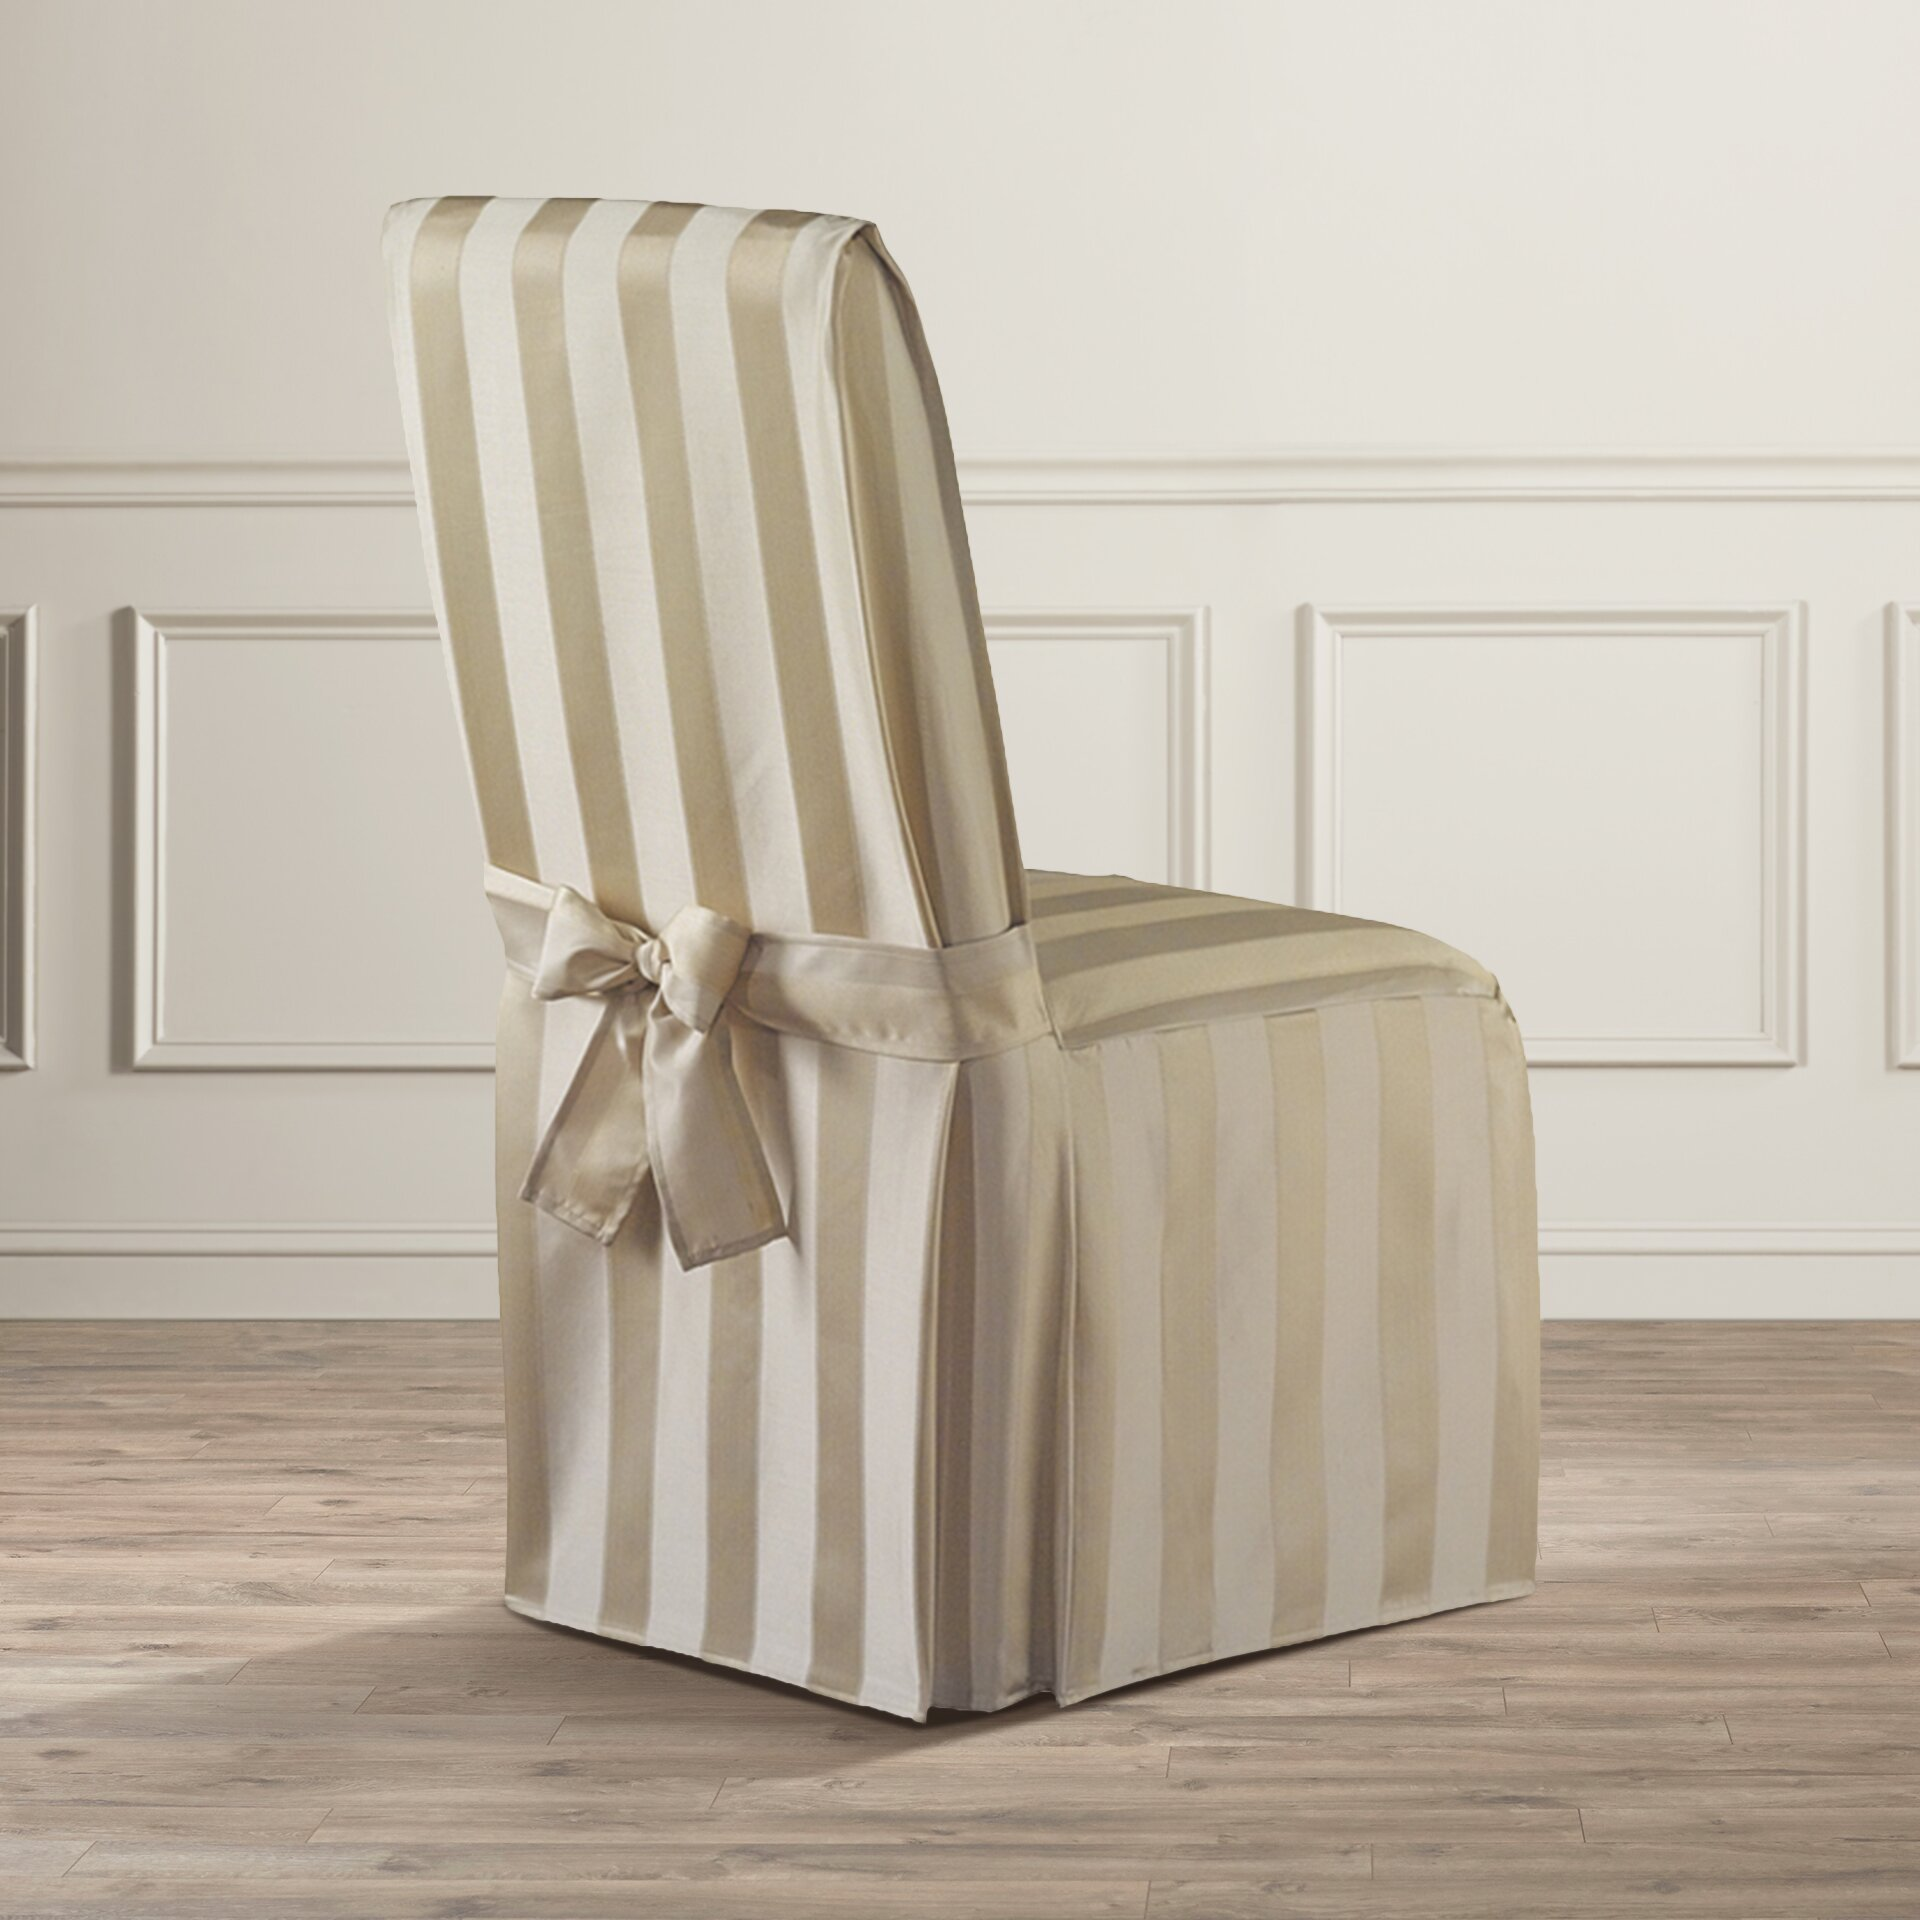 Parson Chair Slipcovers Home & Interior Design